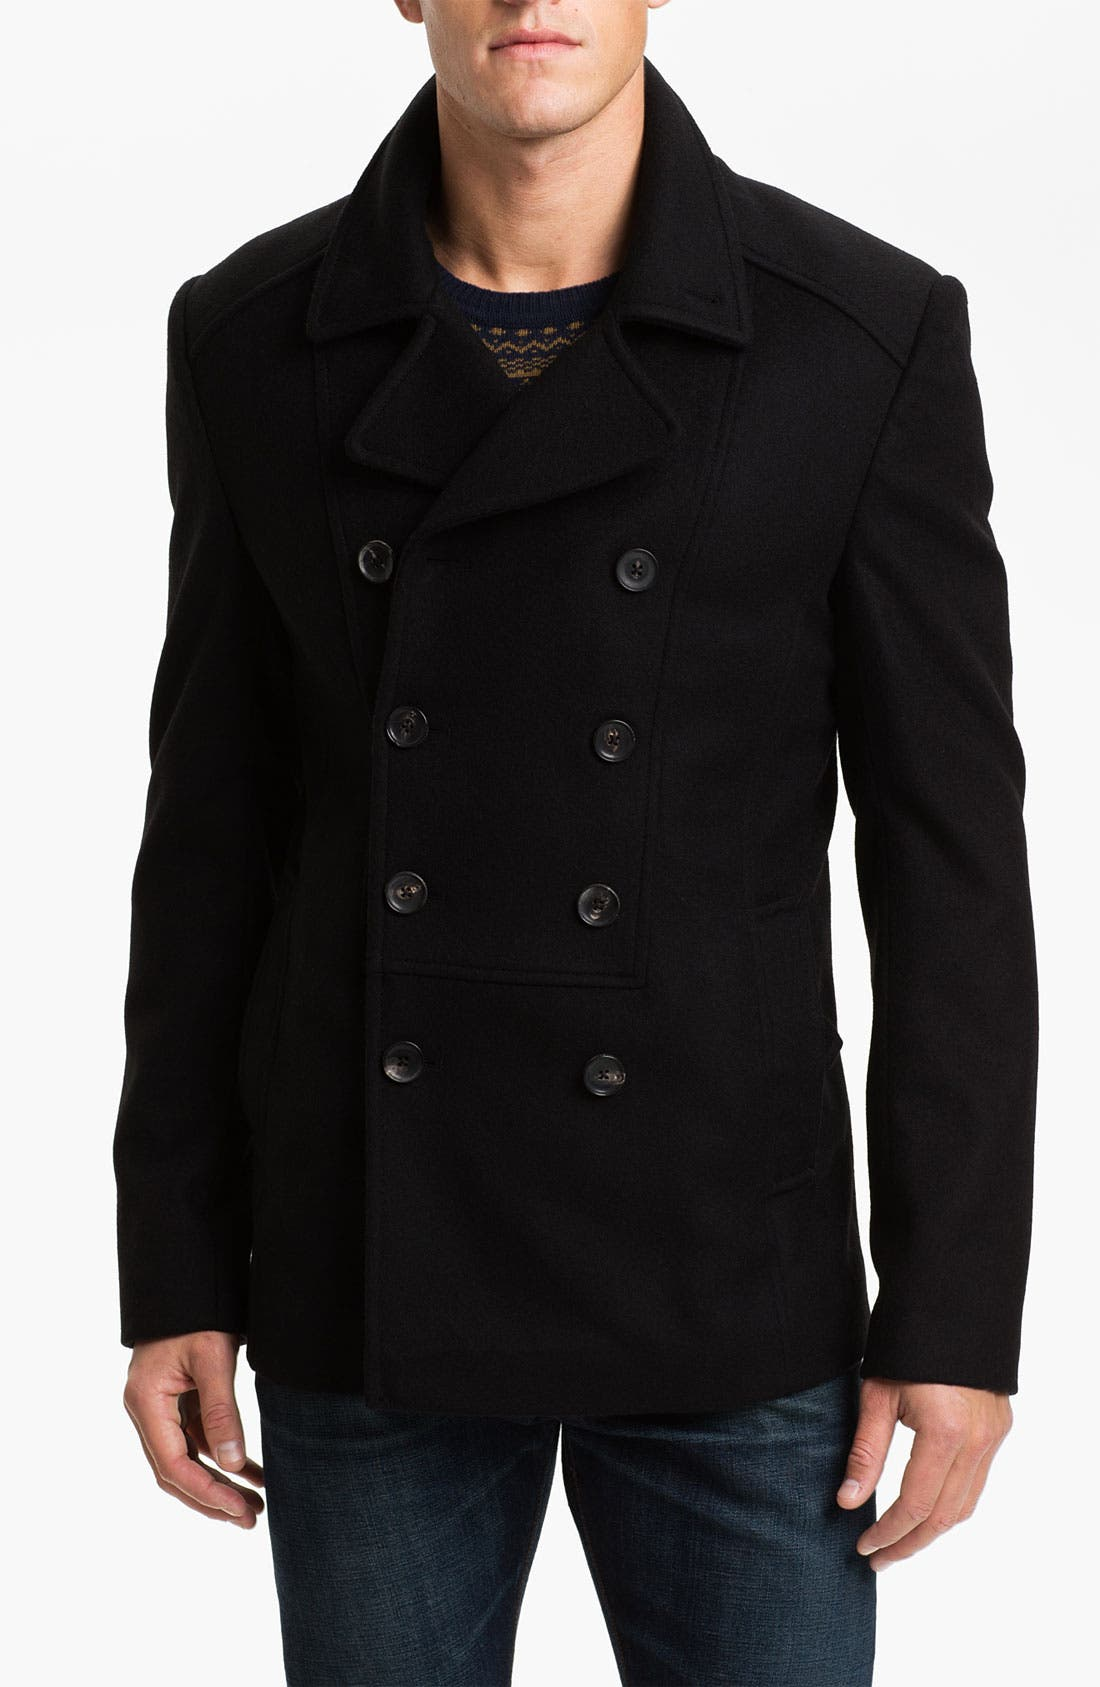 Alternate Image 1 Selected - Ted Baker London 'Outlig' Double Breasted Wool Blend Coat